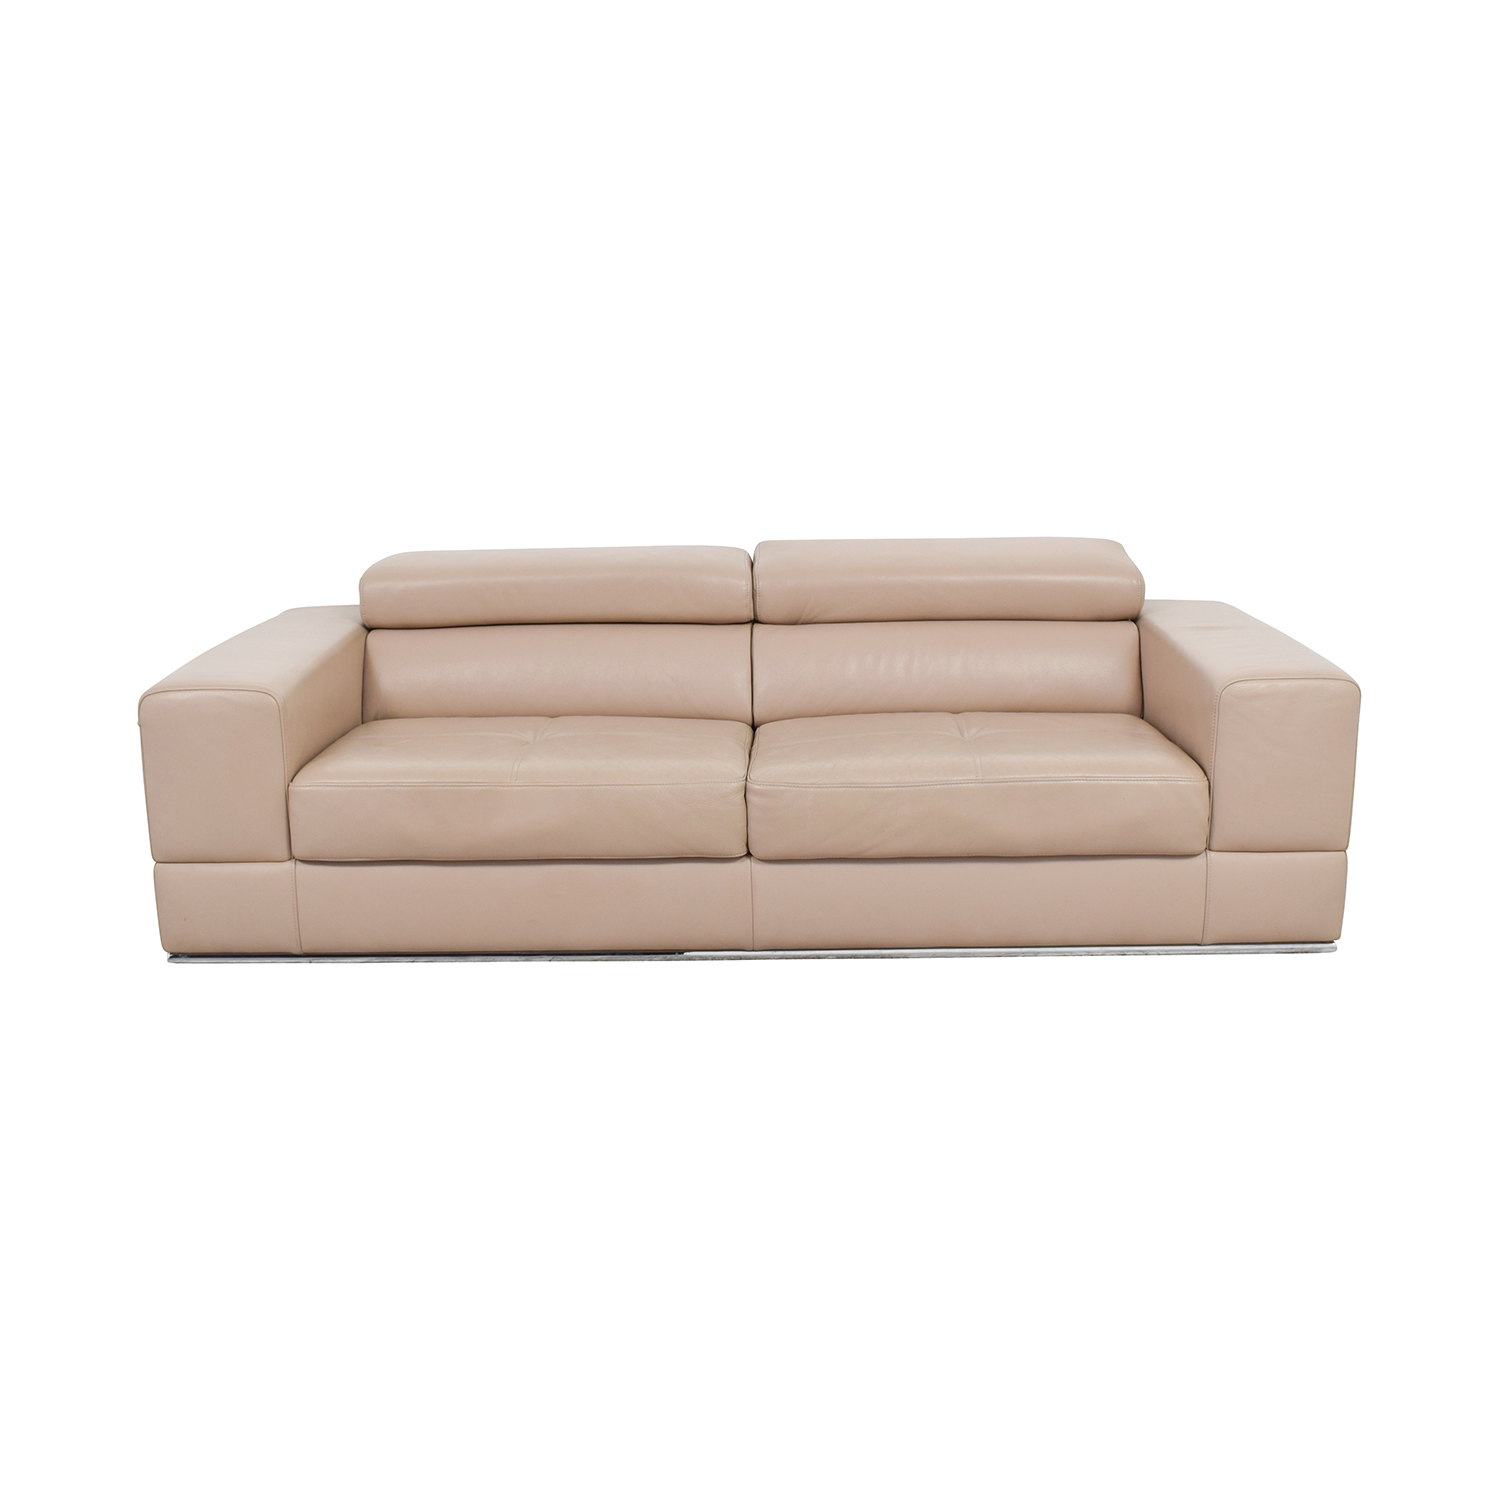 shop Lazzoni Beige Leather Sofa Lazzoni Sofas